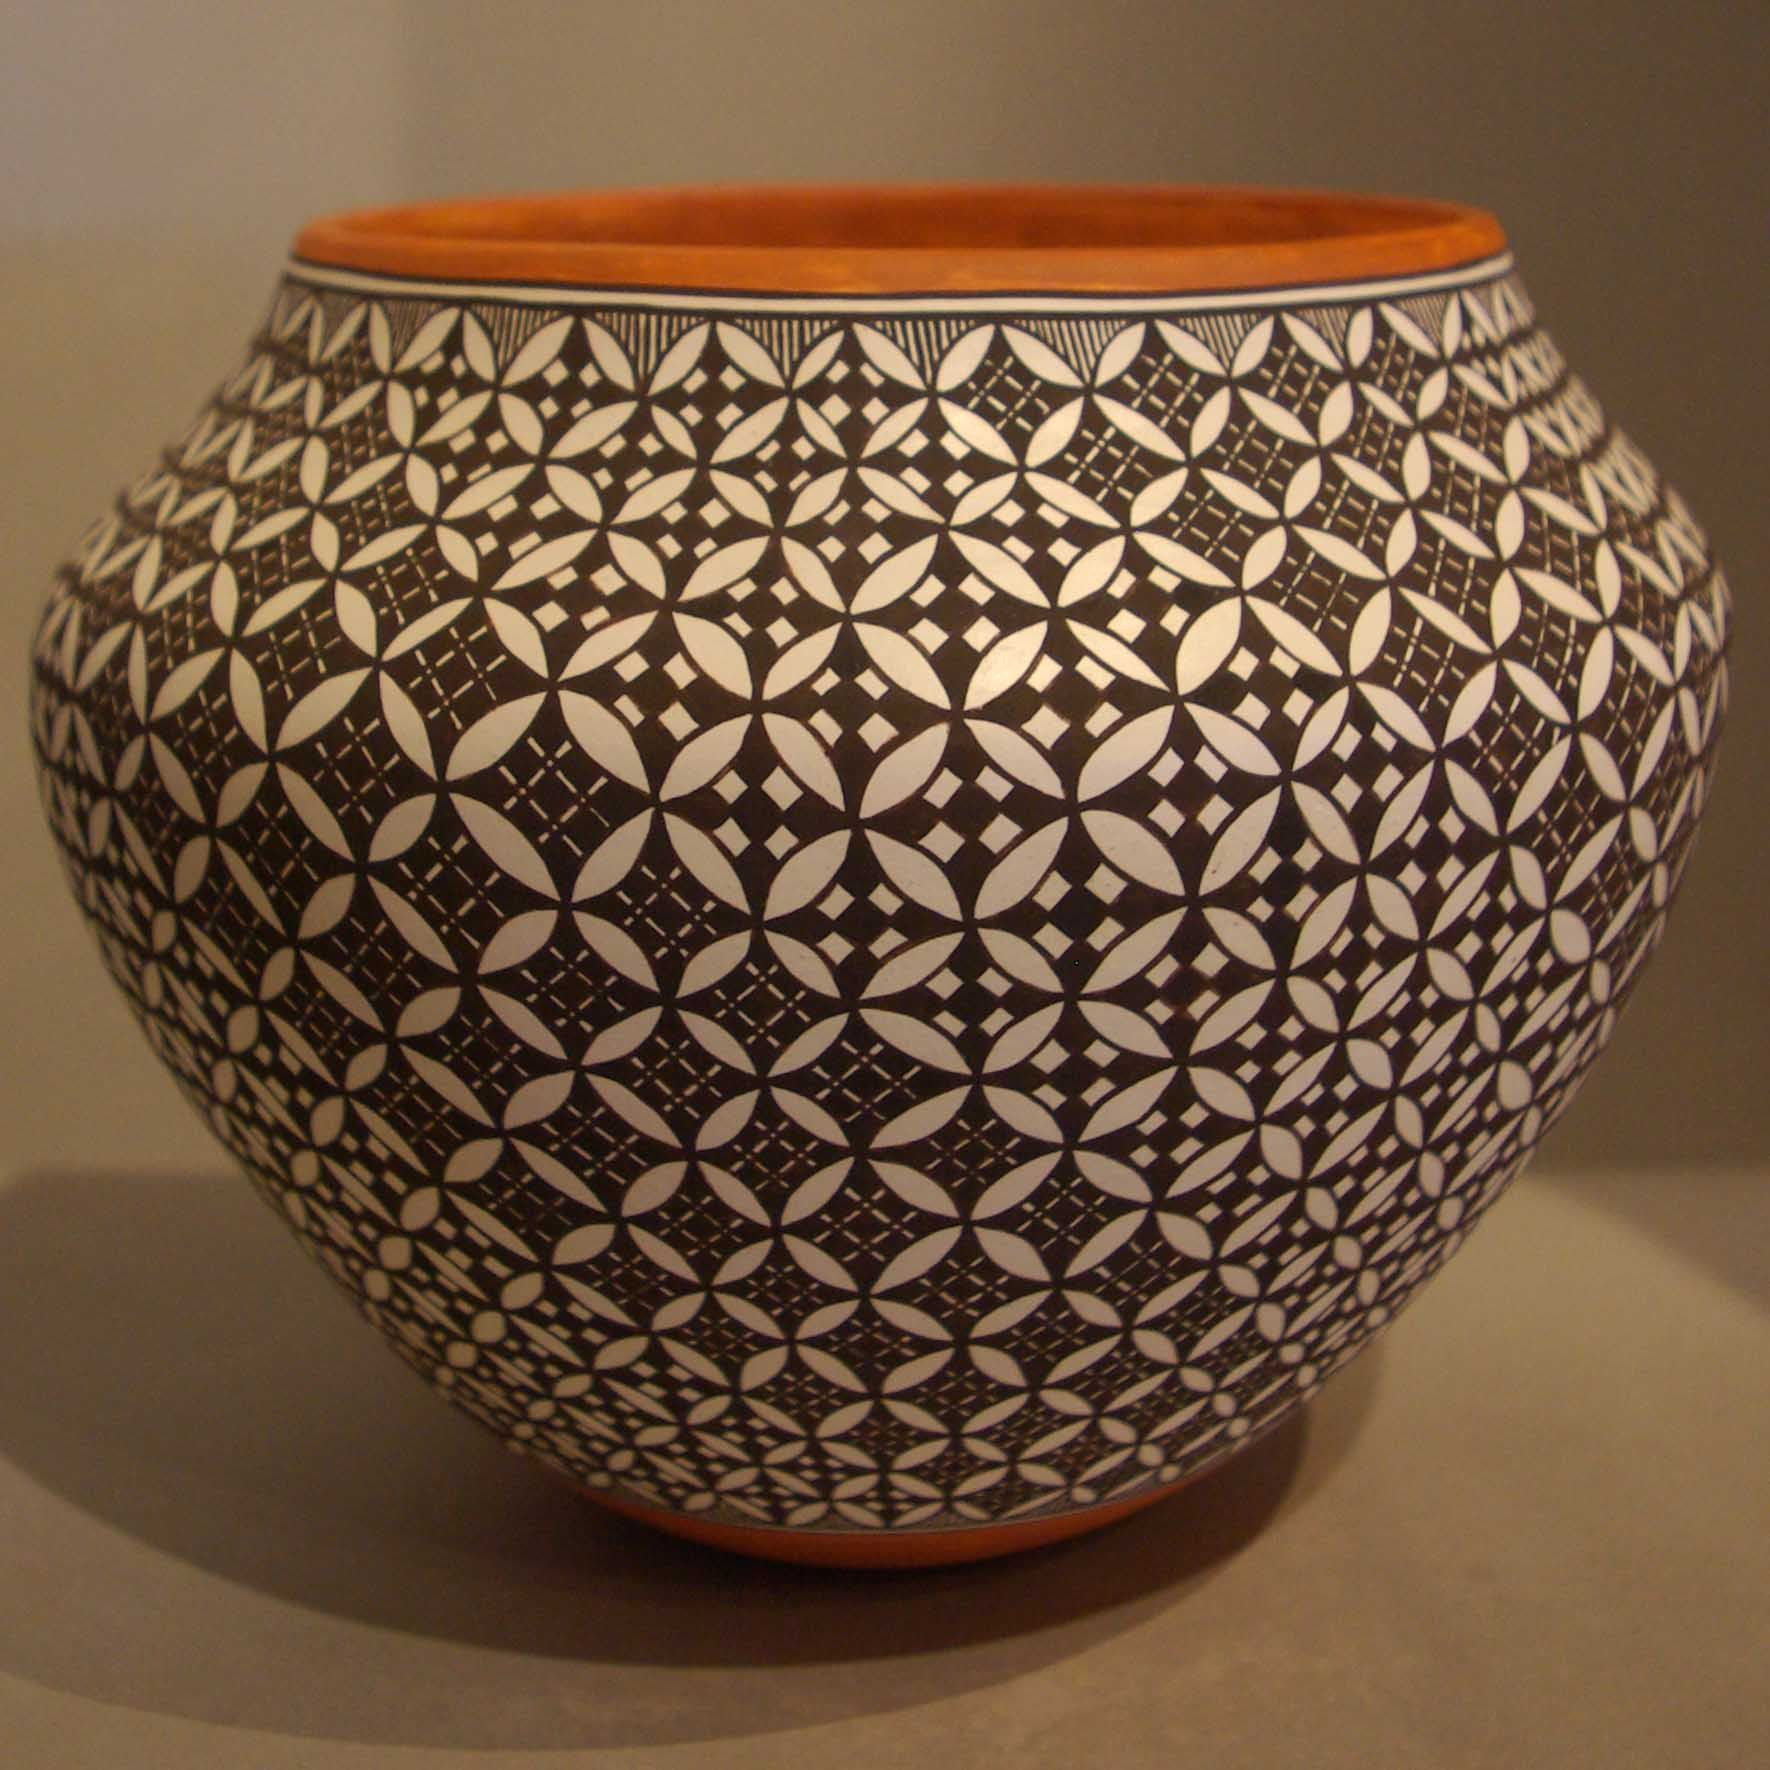 Pueblo: Acoma Artist: Amanda Lucario Date Created: 2013 Dimensions: 6 in H by 7 1/2 in Dia Item Number: xxack3151 Price: $ 1750 Description: Water jar with swirl geometric design New Arrival